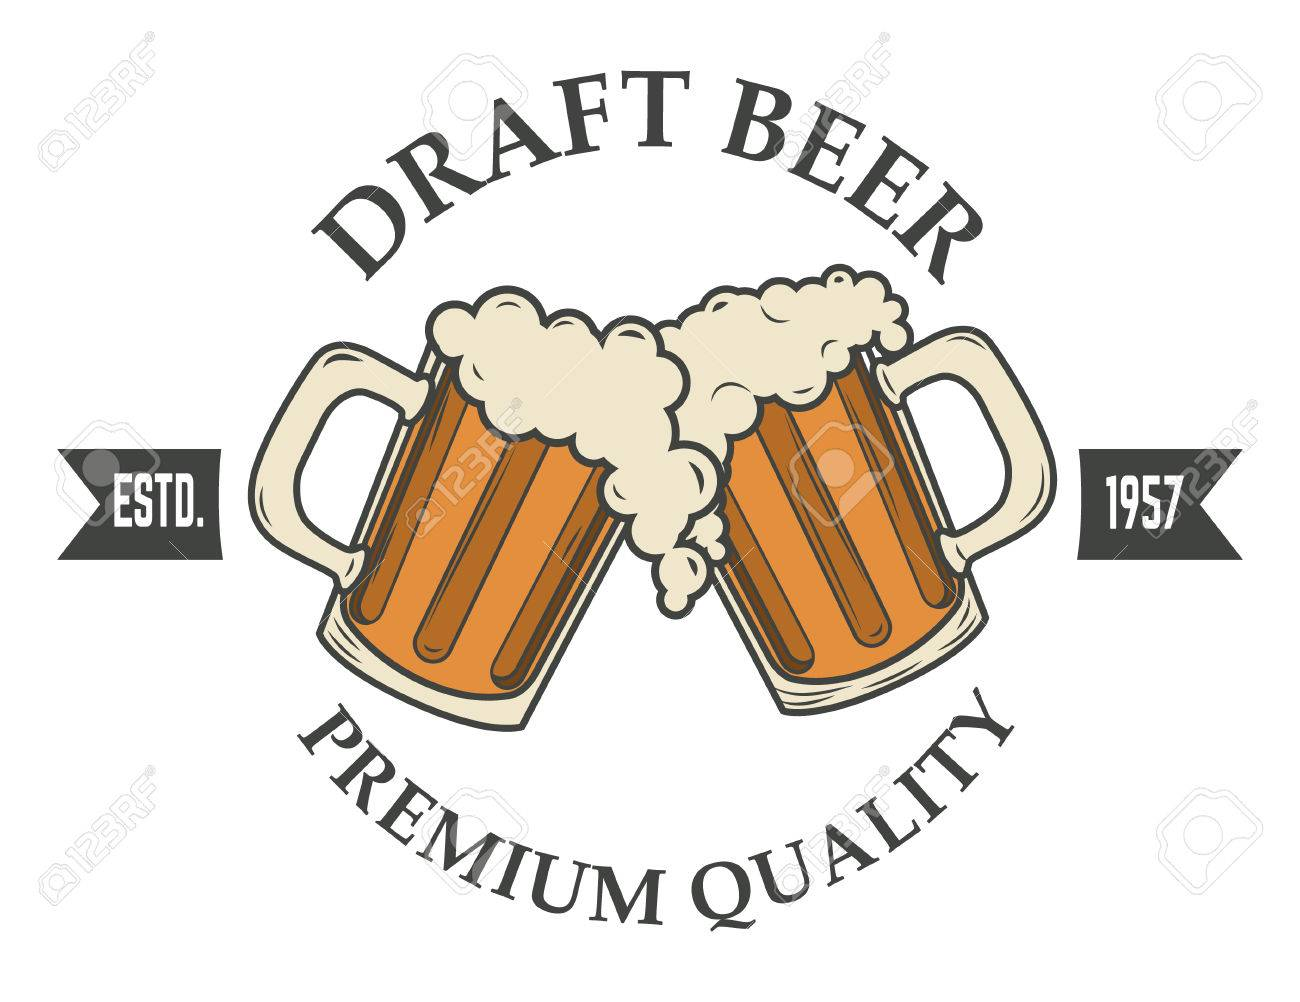 draft beer vector illustration. icon,badge or label design template. Pab or bar icon. - 47555440